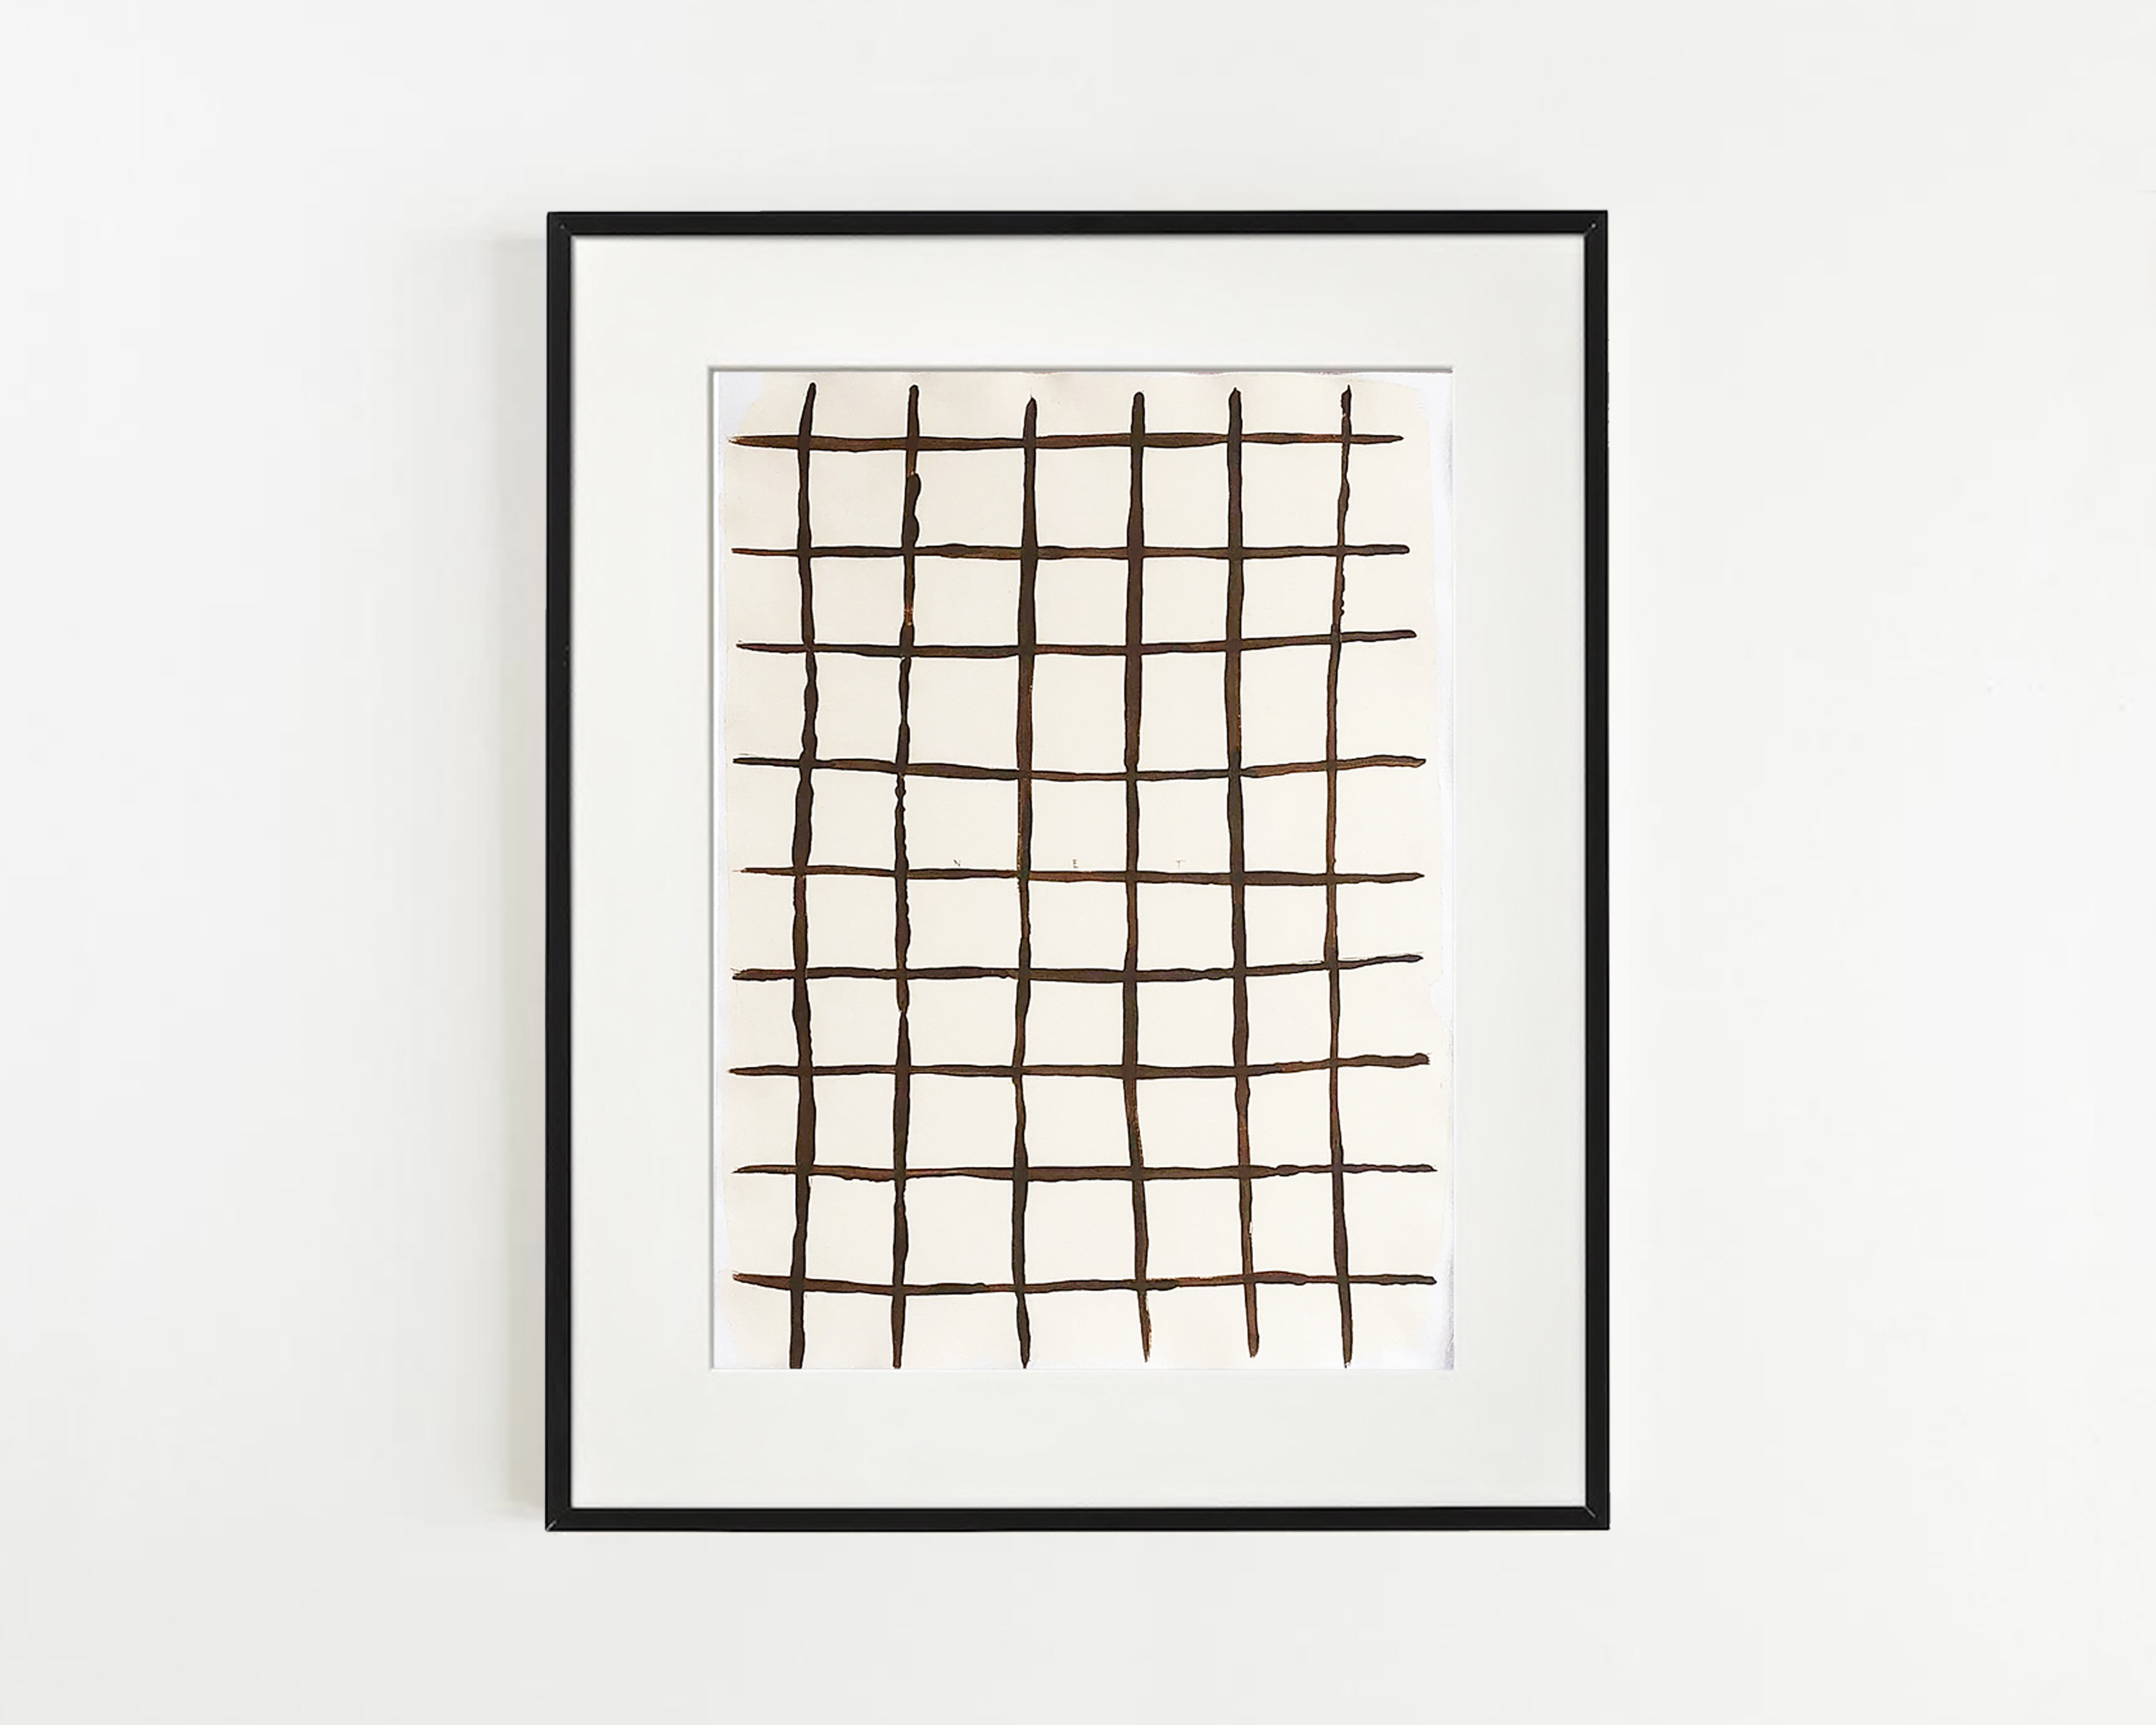 Abstract Line Artwork £39.90